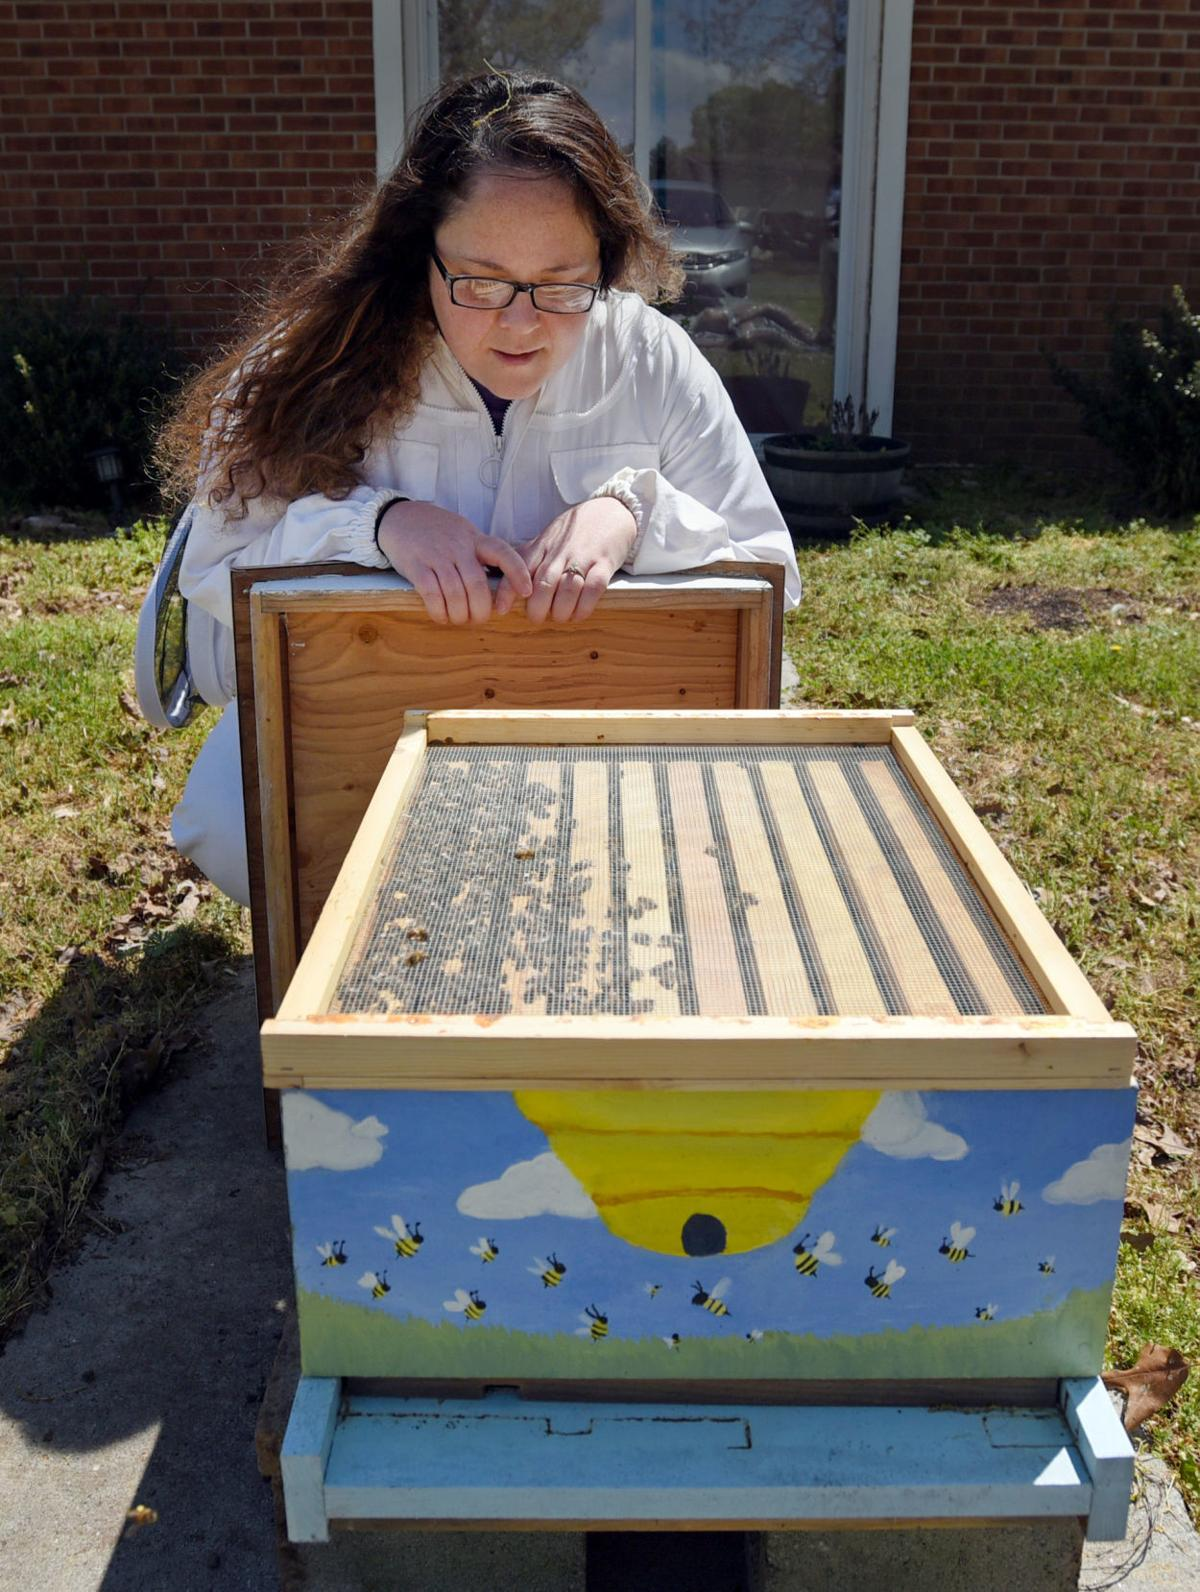 A month into e-learning, Forsyth teachers get creative while coping with difficulty of life outside of classroom